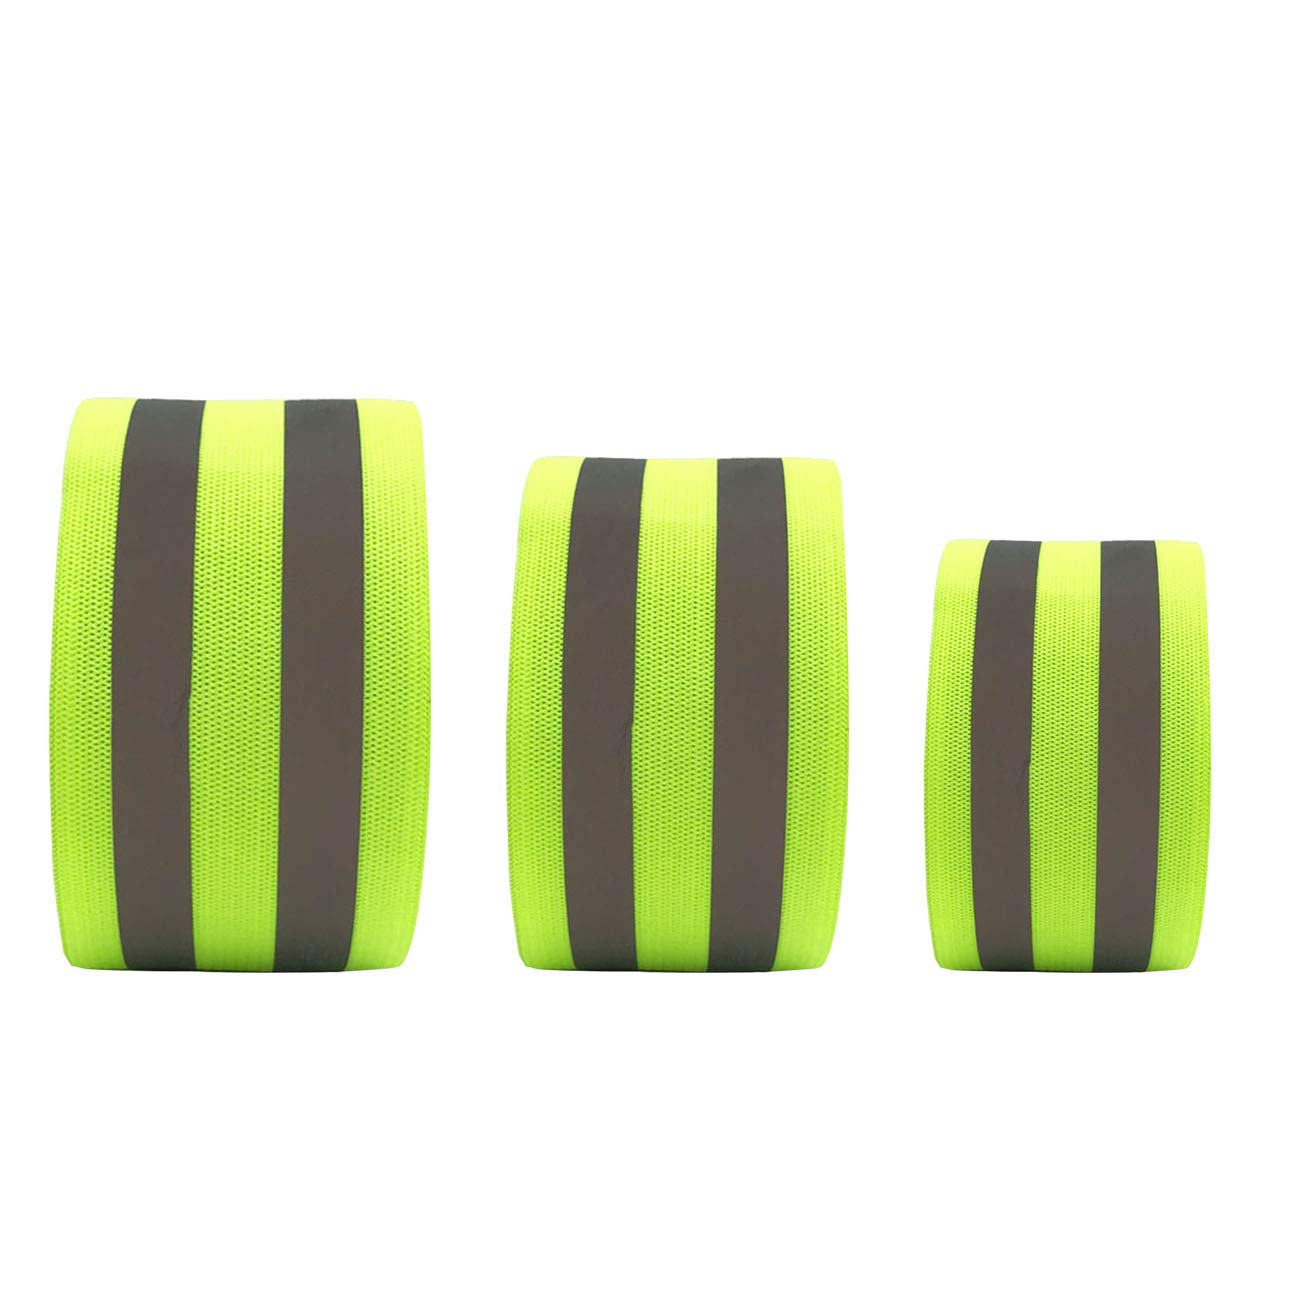 Arm for Wrist Leg.High Visibility Safety Reflective Running Gear for Men and Women for Night Running Cycling Walking Bicycle Reflective Band Ankle 6 Bands//3 Pairs High Visibility Safety